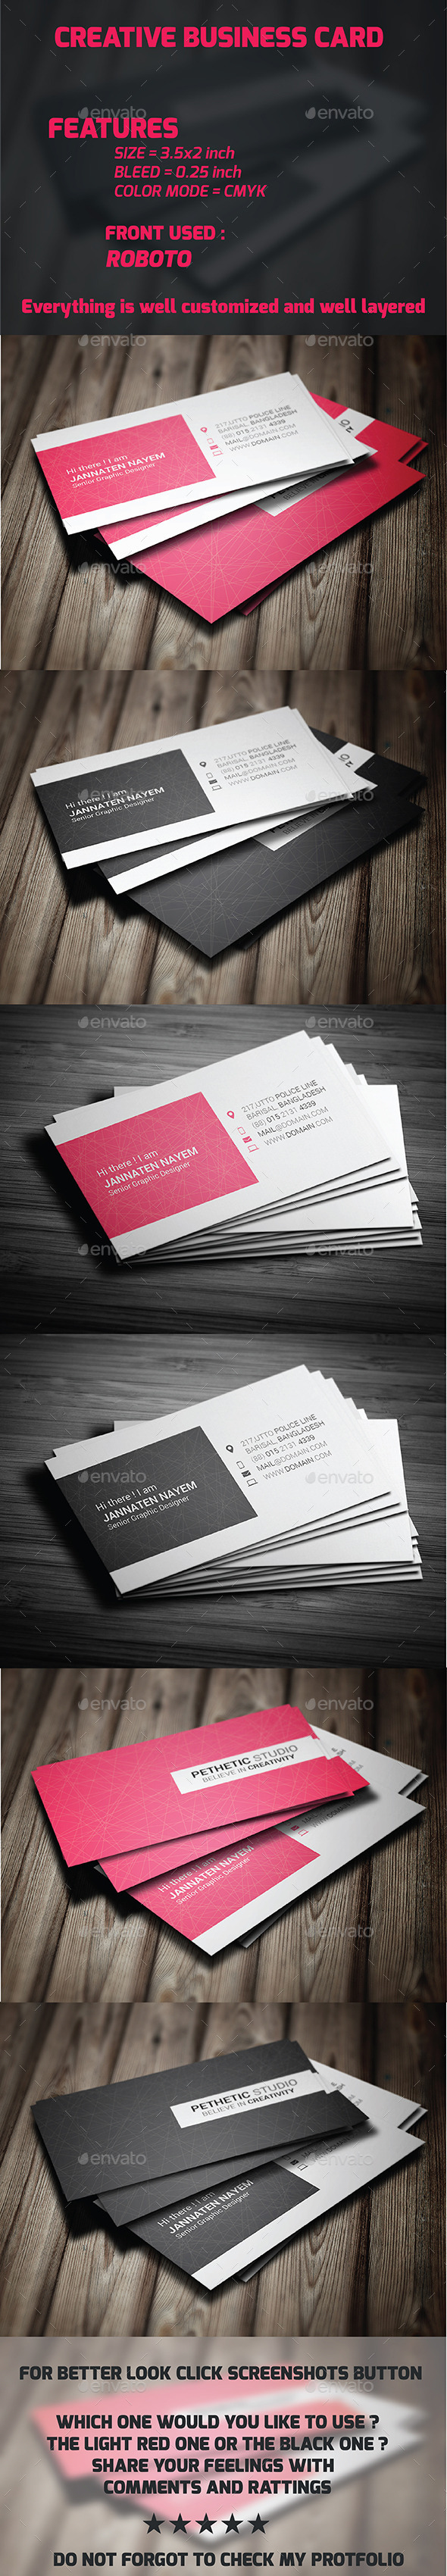 GraphicRiver Creative Business Card 10424448